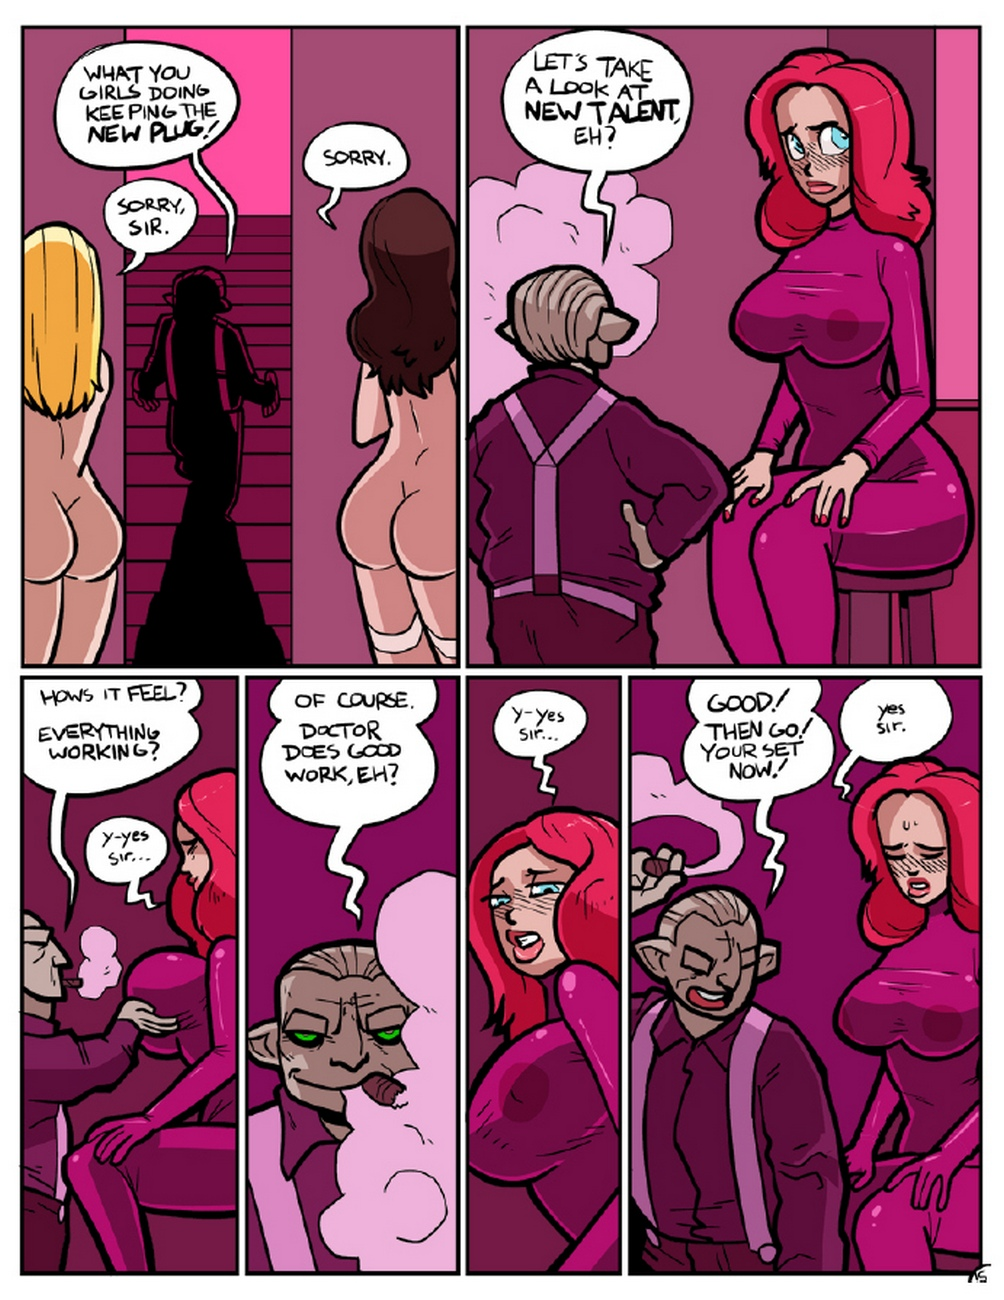 The-Girls-Who-Dance-At-The-Chapel 16 free sex comic